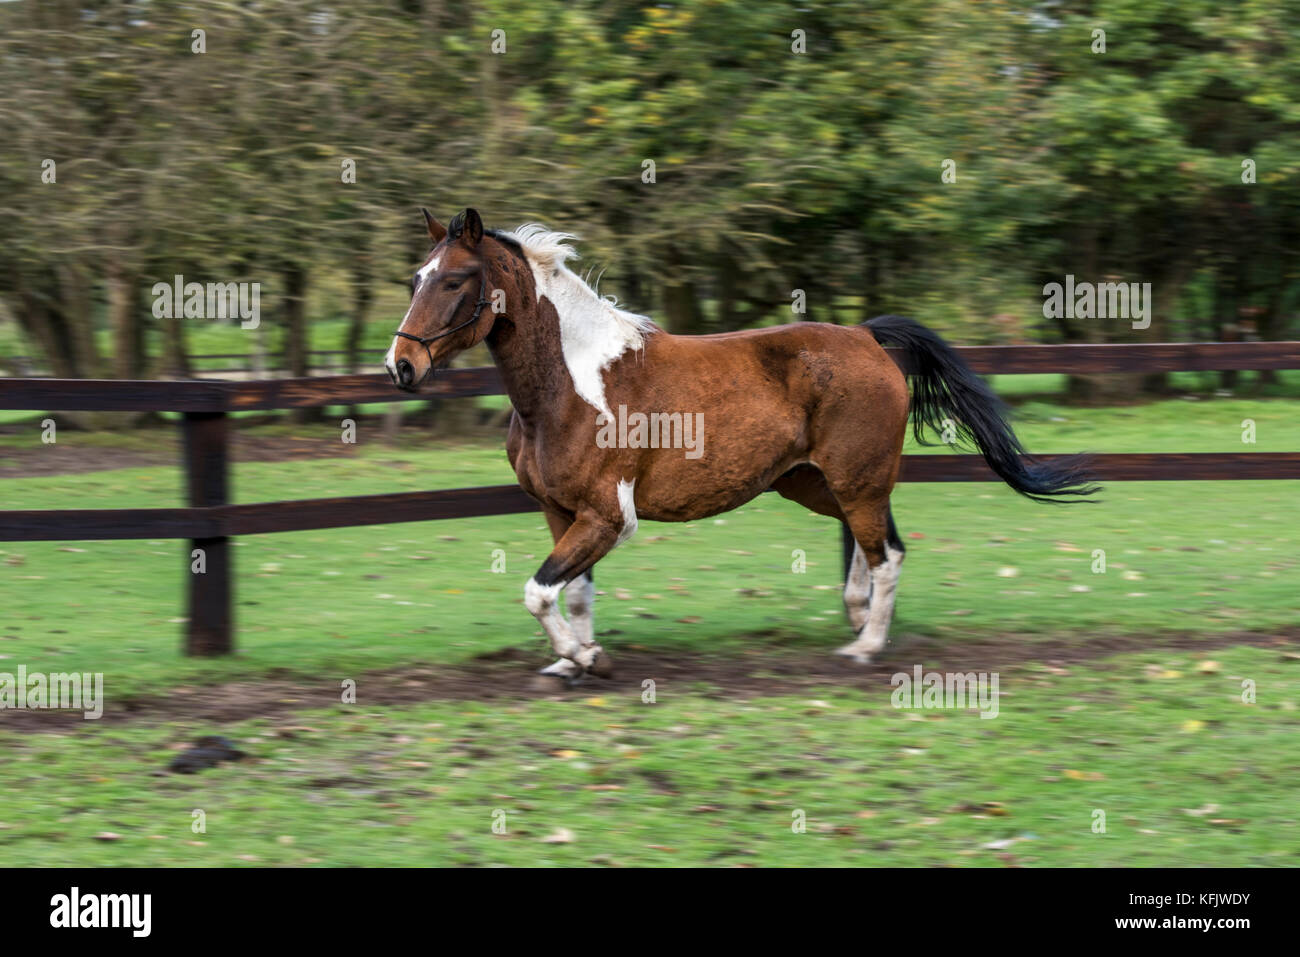 Motion blurred image of Pinto horse / Quarter Horse stallion running outside in field within wooden enclosure - Stock Image